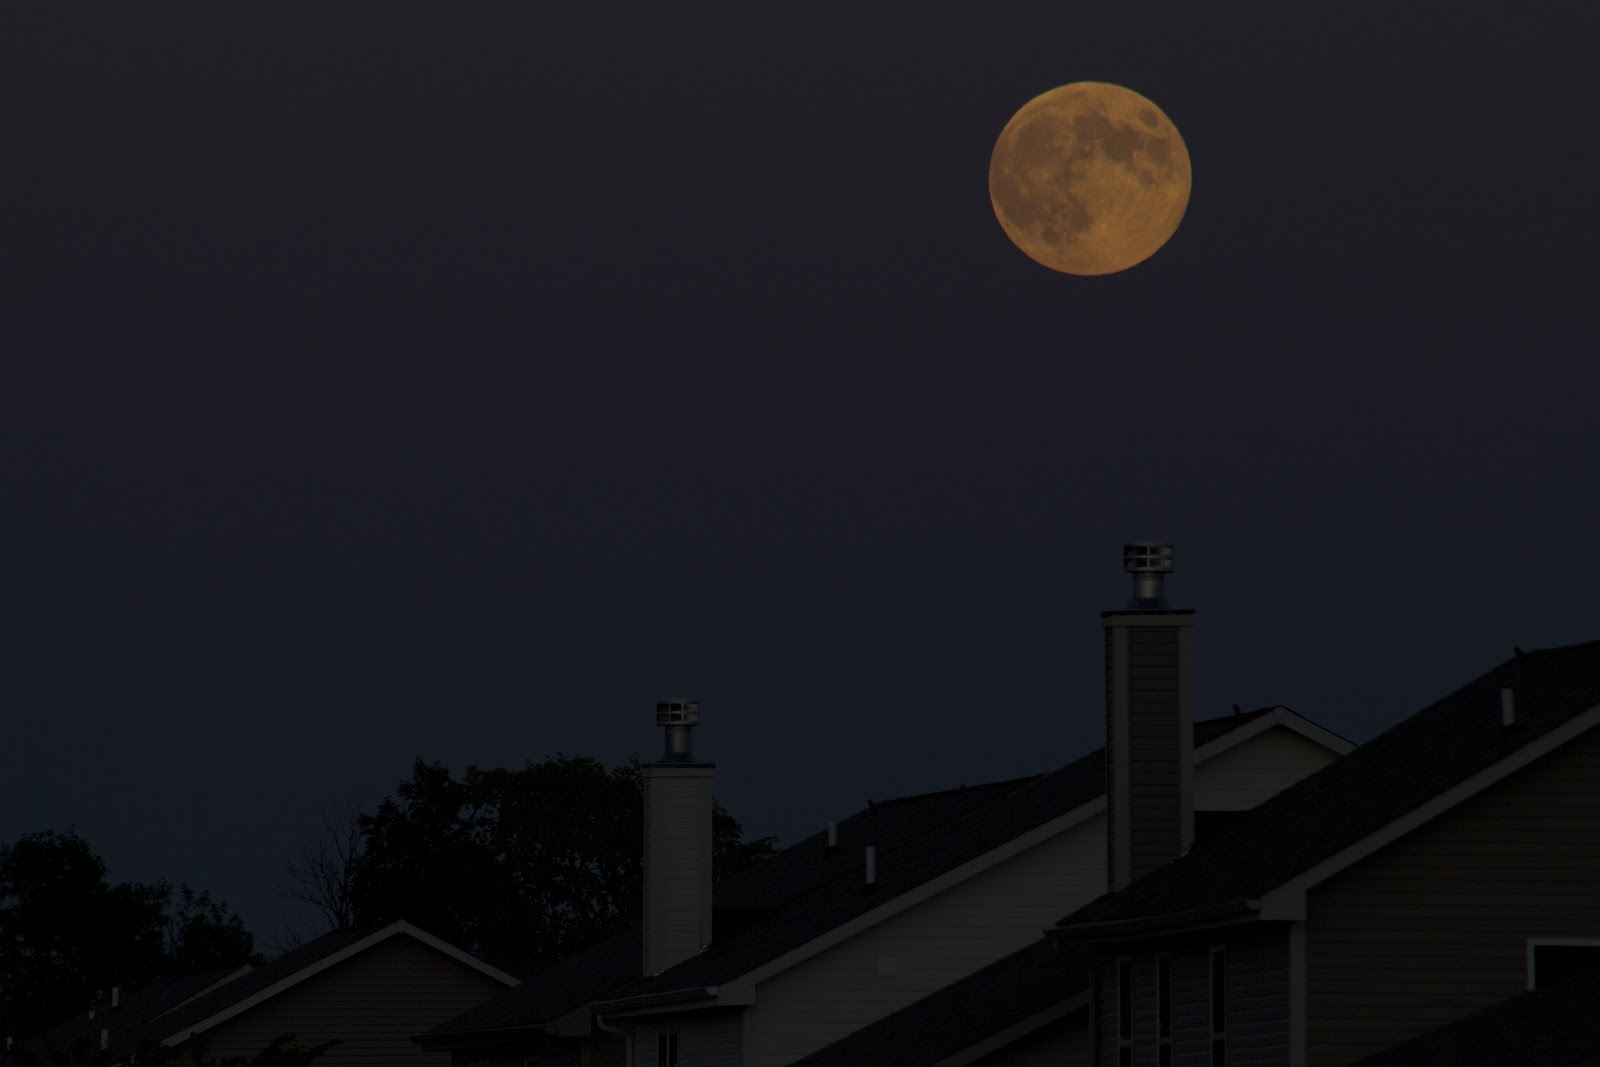 supermoon september 2014